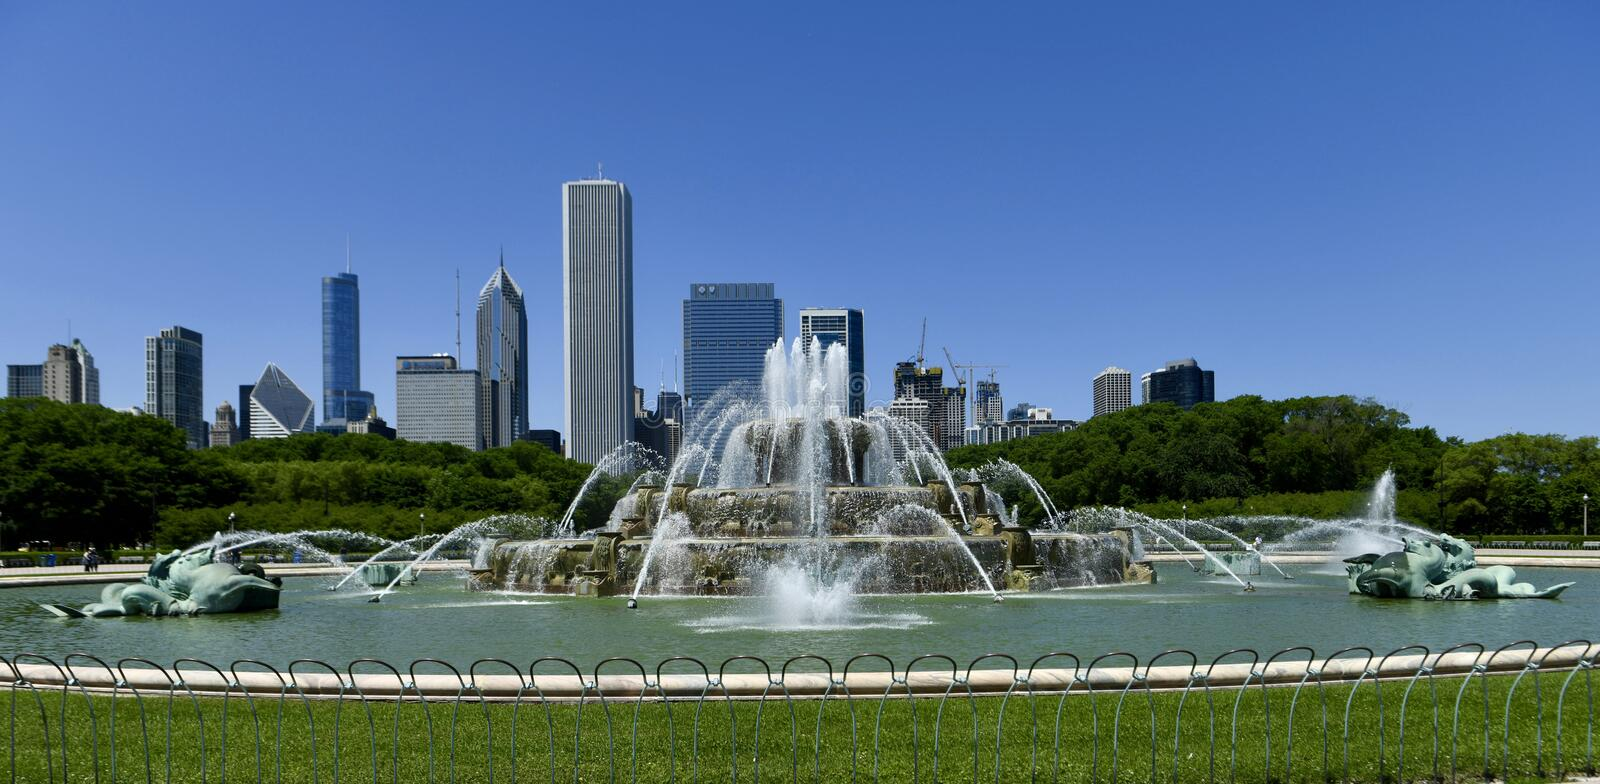 Buckingham Fountain Regular Spray. This is a Summer picture of iconic Buckingham Fountain at regular sprays located in Grant Park in Chicago, Illinois in Cook stock images